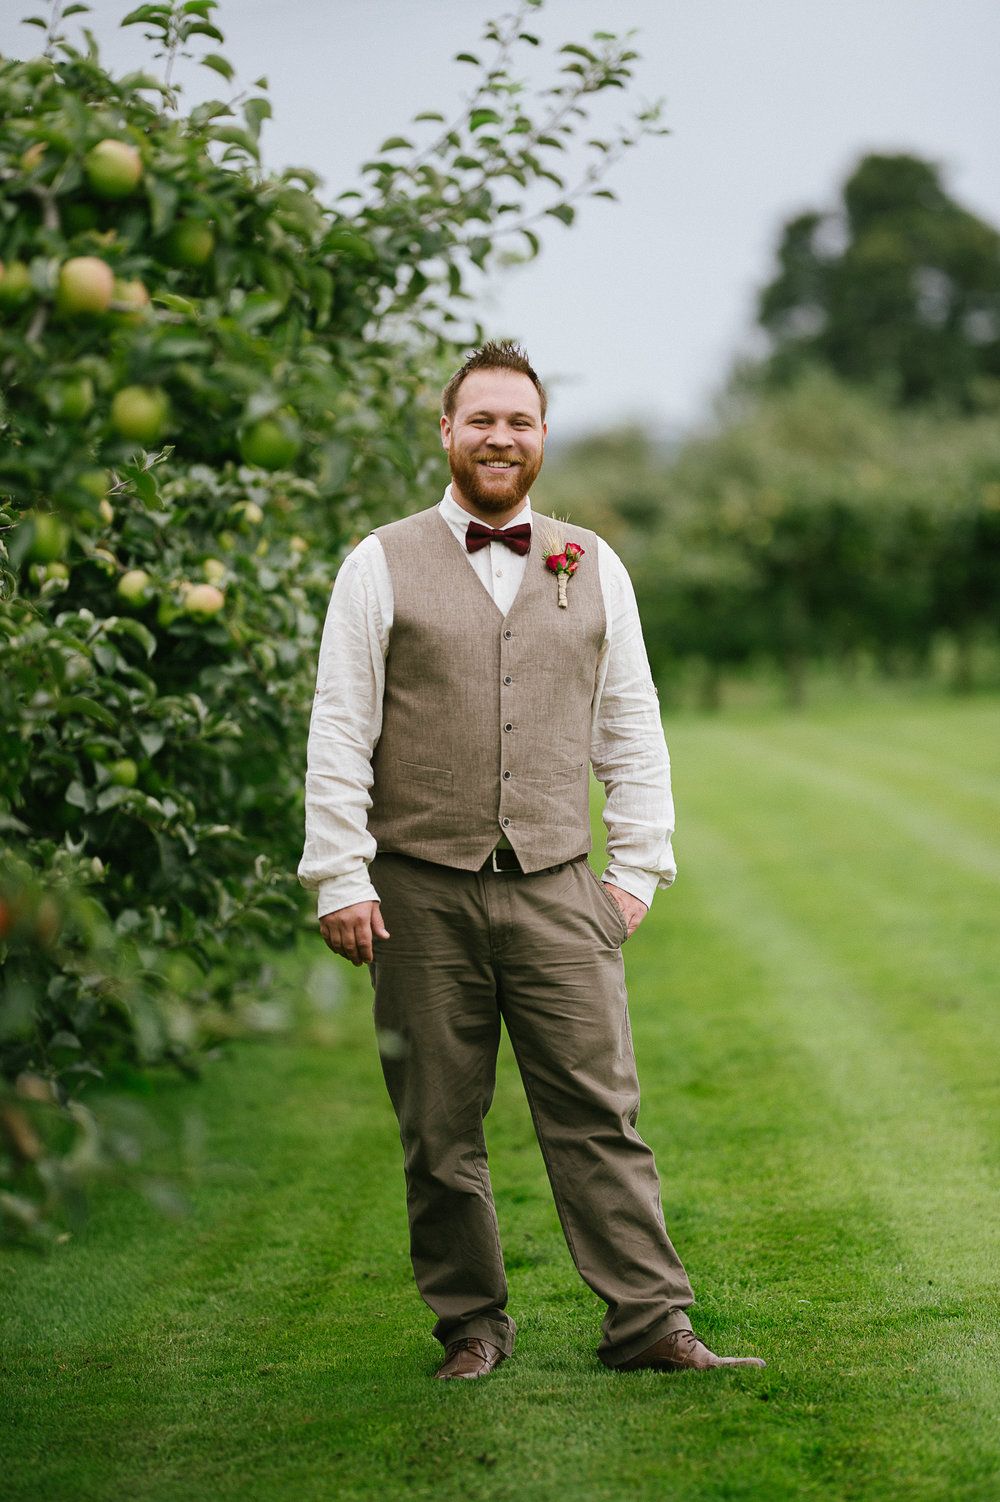 Swan Trail Farm Wedding_Sarah Schurman + Brian Skadan_Snohomish Wedding_Kelsey Lane Photography-5631.jpg